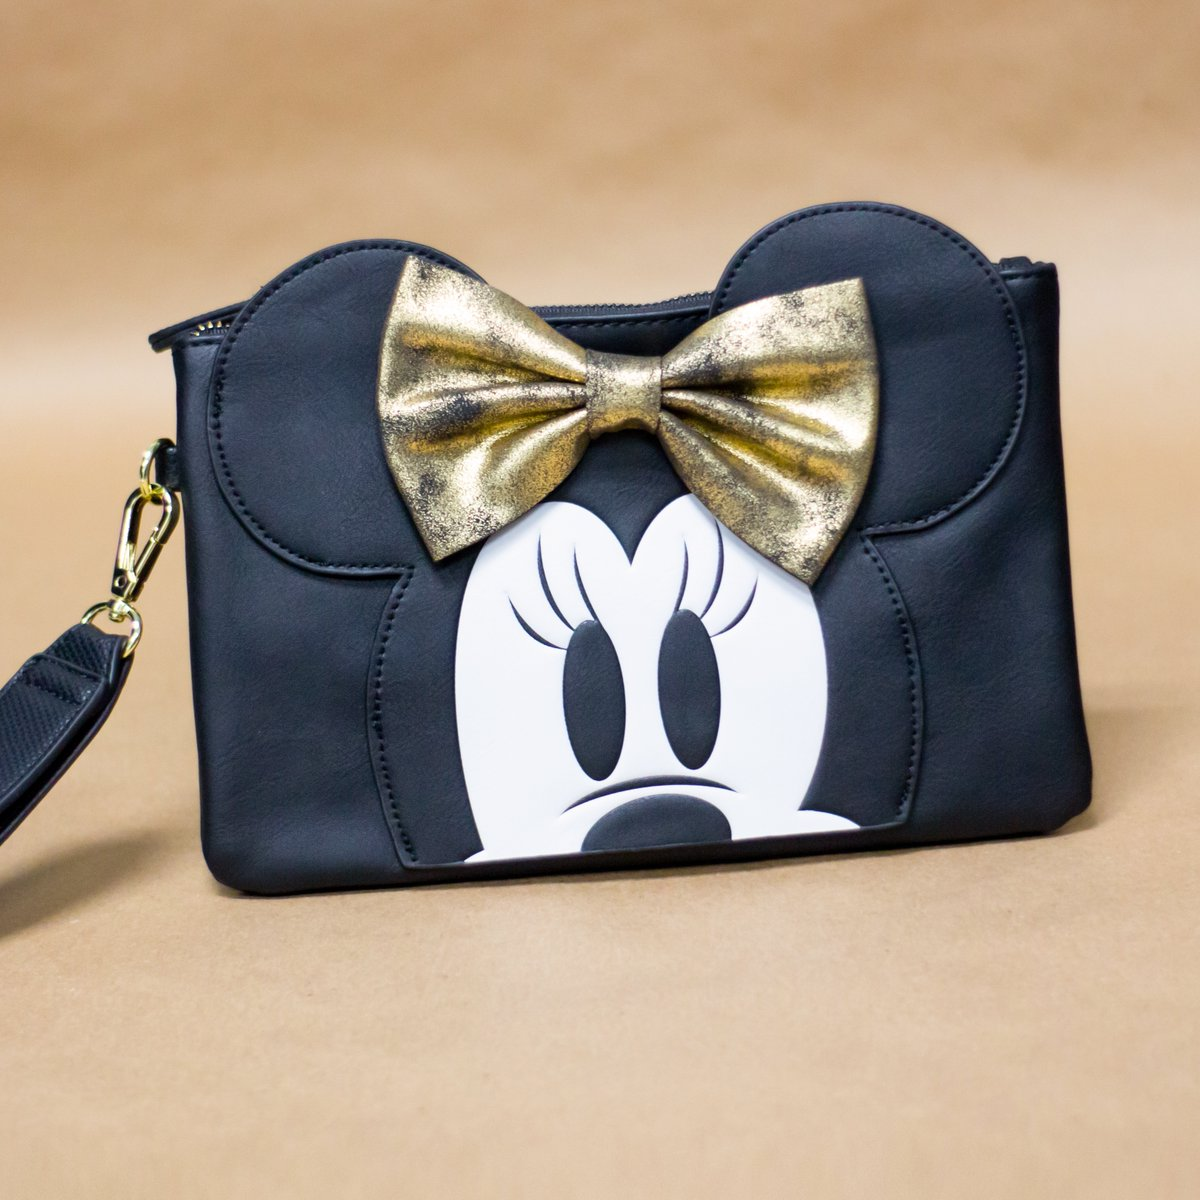 This #Disney #MinnieMouse #wallet reminds us of the happiest place on earth!  https://t.co/gcq4xQI3M4 has fun and #practical Disney themed #accessories featuring your favorite characters, from #disneyprincess and #Pixar to #StarWars. Shop here: https://t.co/YZCUC67hPp https://t.co/wi4LpDkoKP